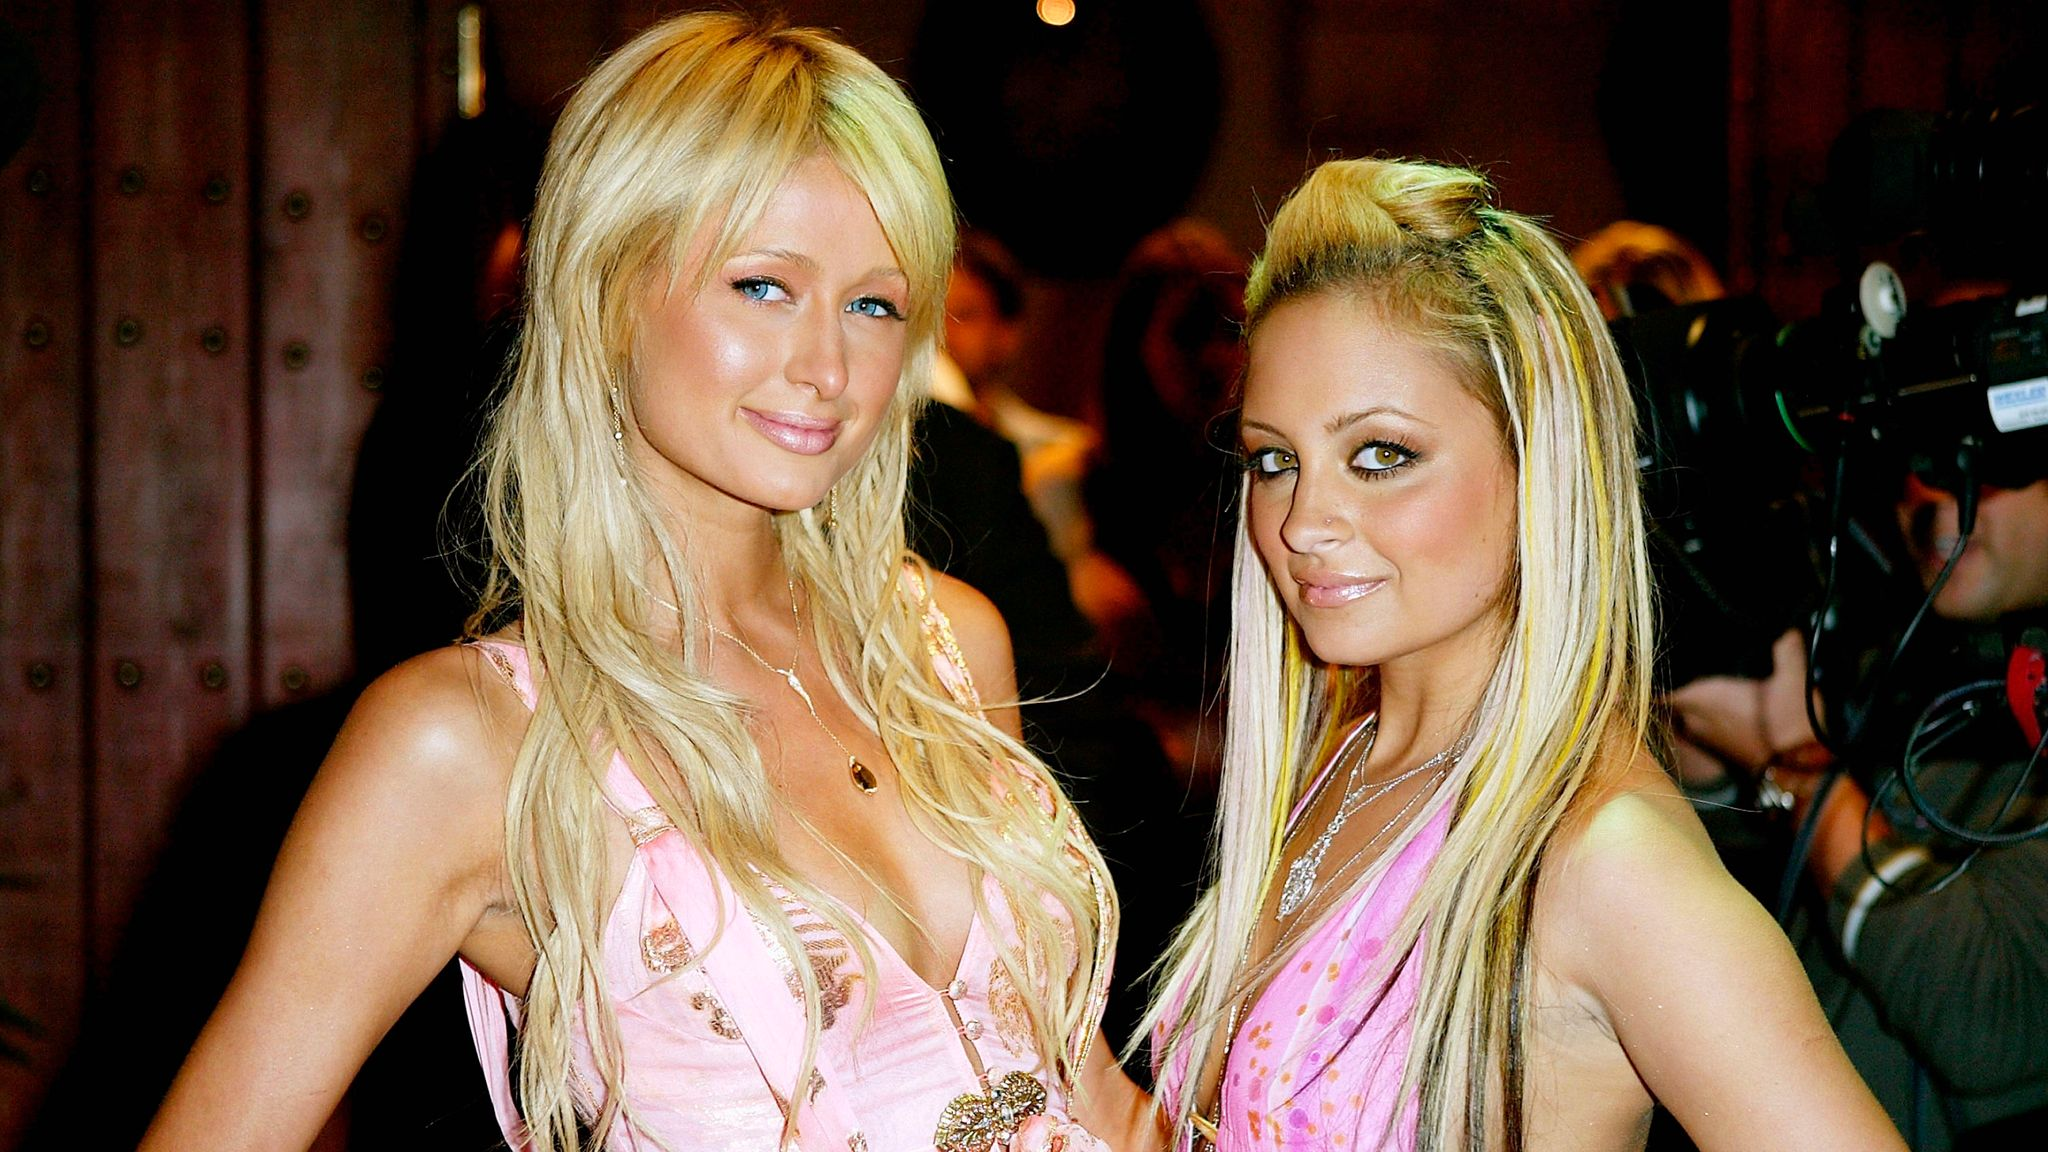 """Nicole Richie and Paris Hilton (L) aririve for the """"Simple Life 2"""" Welcome Home Party at The Spider Club on April 14, 2004 in Hollywood, California"""